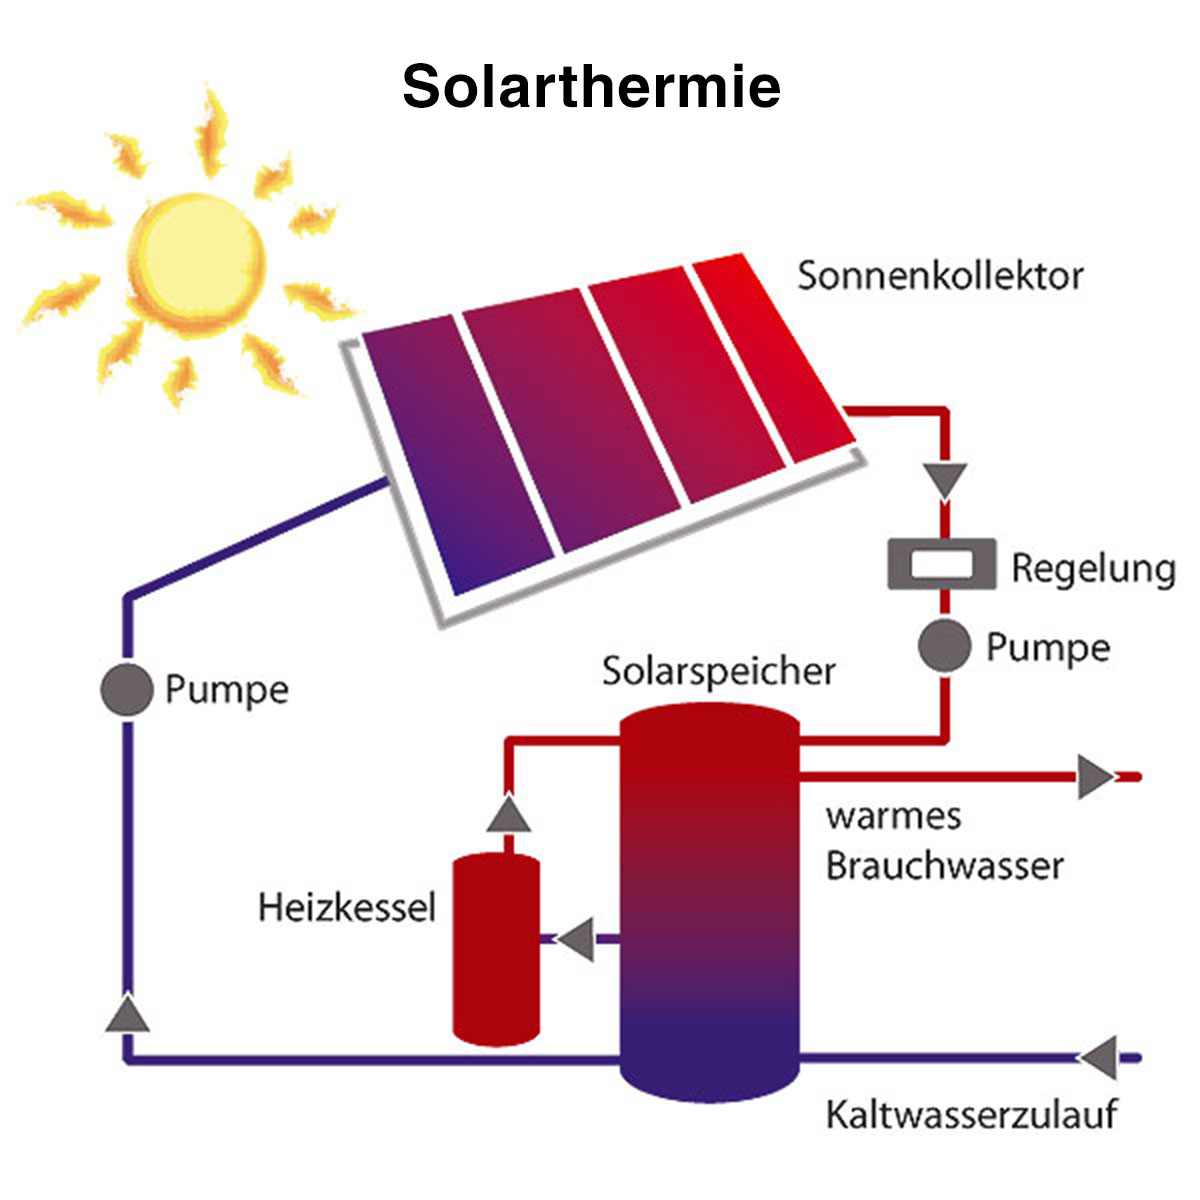 Funktionsweise der Solarthermie